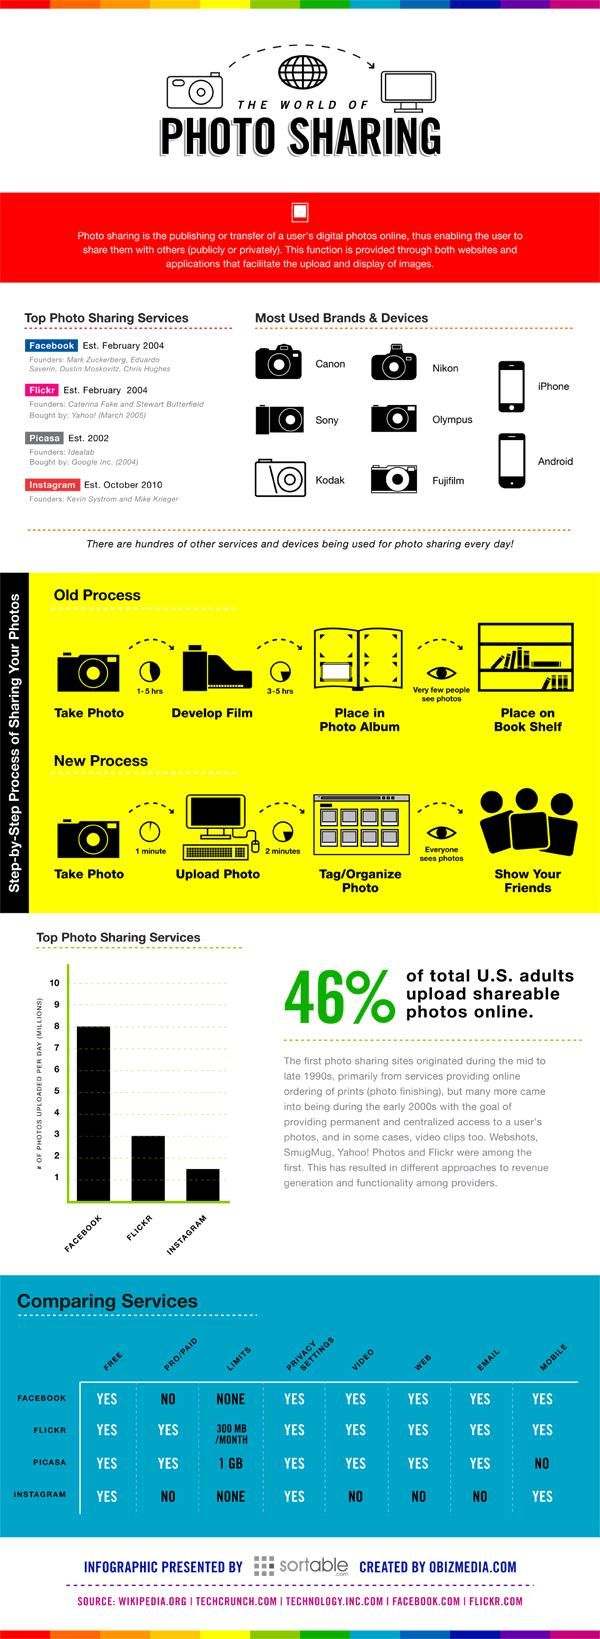 25 Infographics To Become A Better Photographer